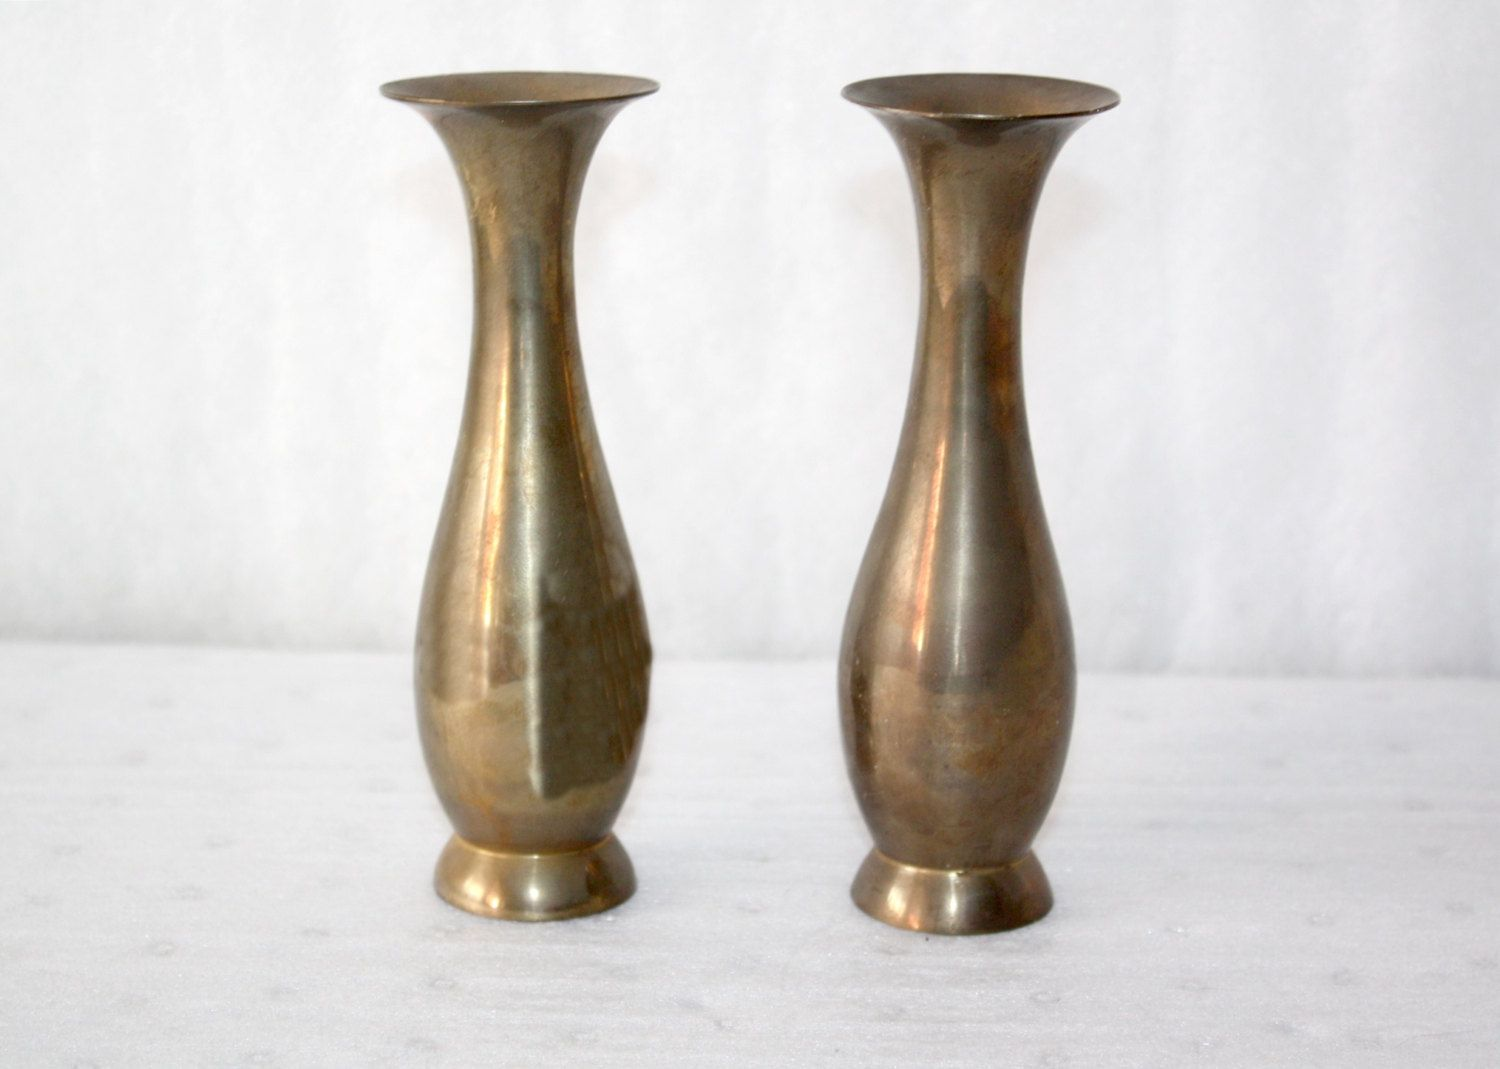 Vintage Pair of Solid Brass Vases Hand Made in India No Damage